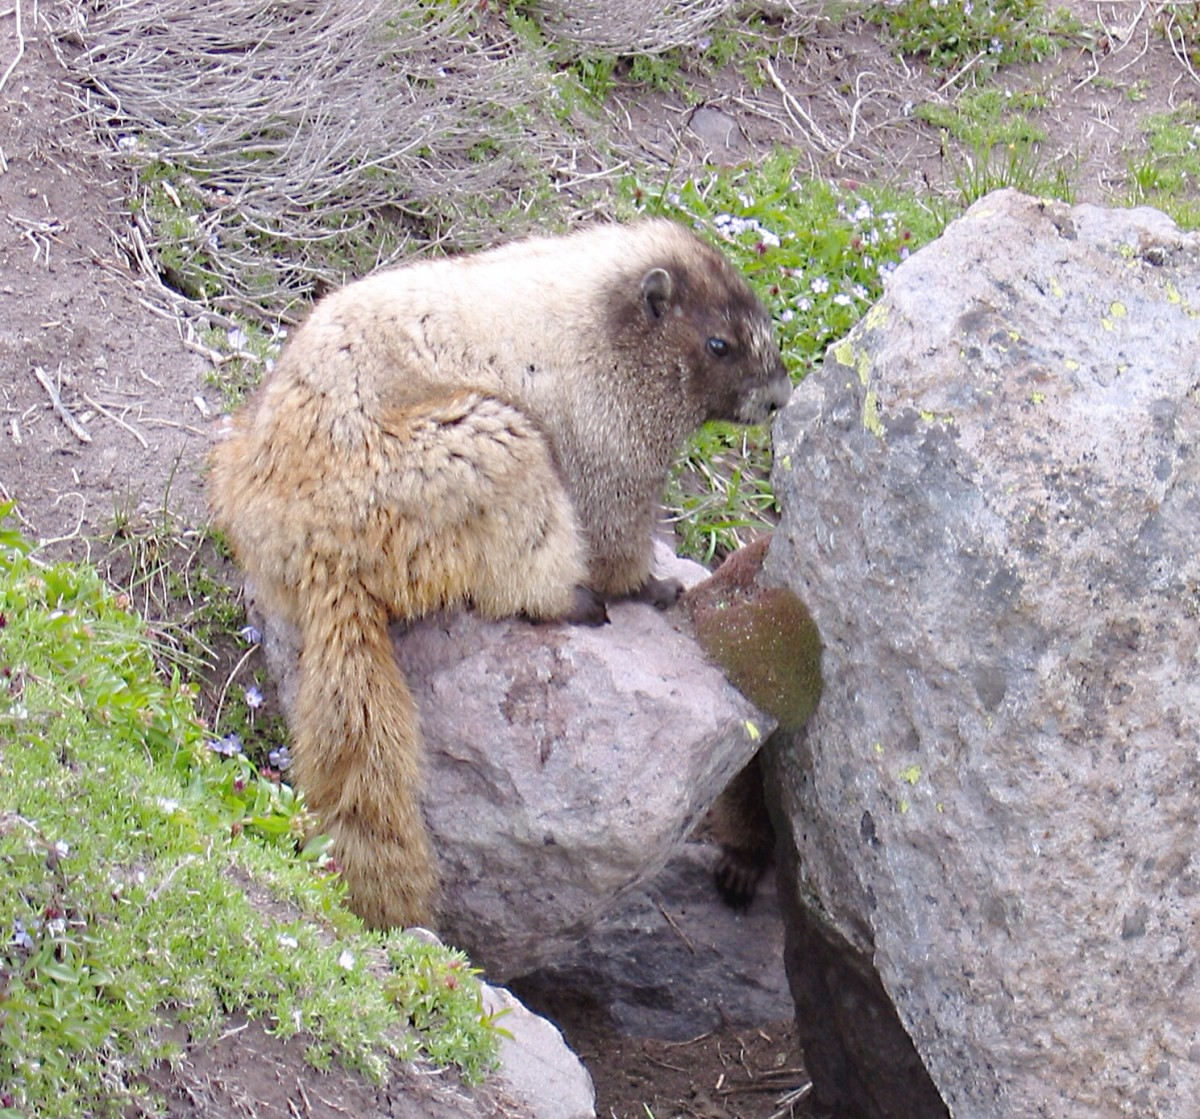 A hoary marmot in Mount Ranier National Park, Washington